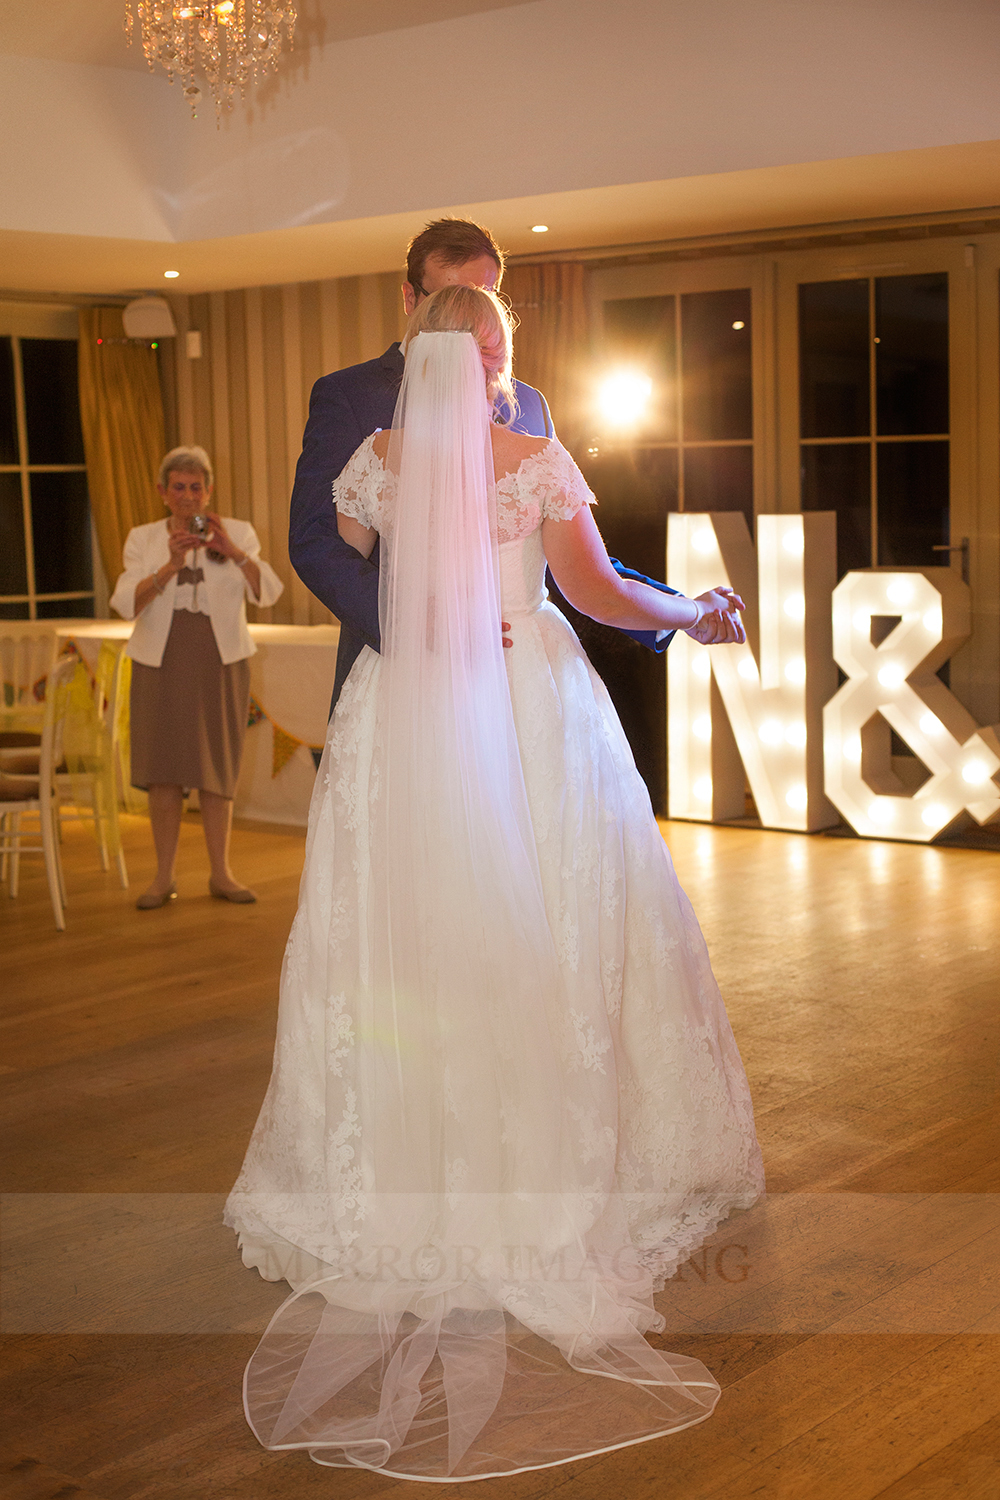 notts wedding photographer 60.jpg